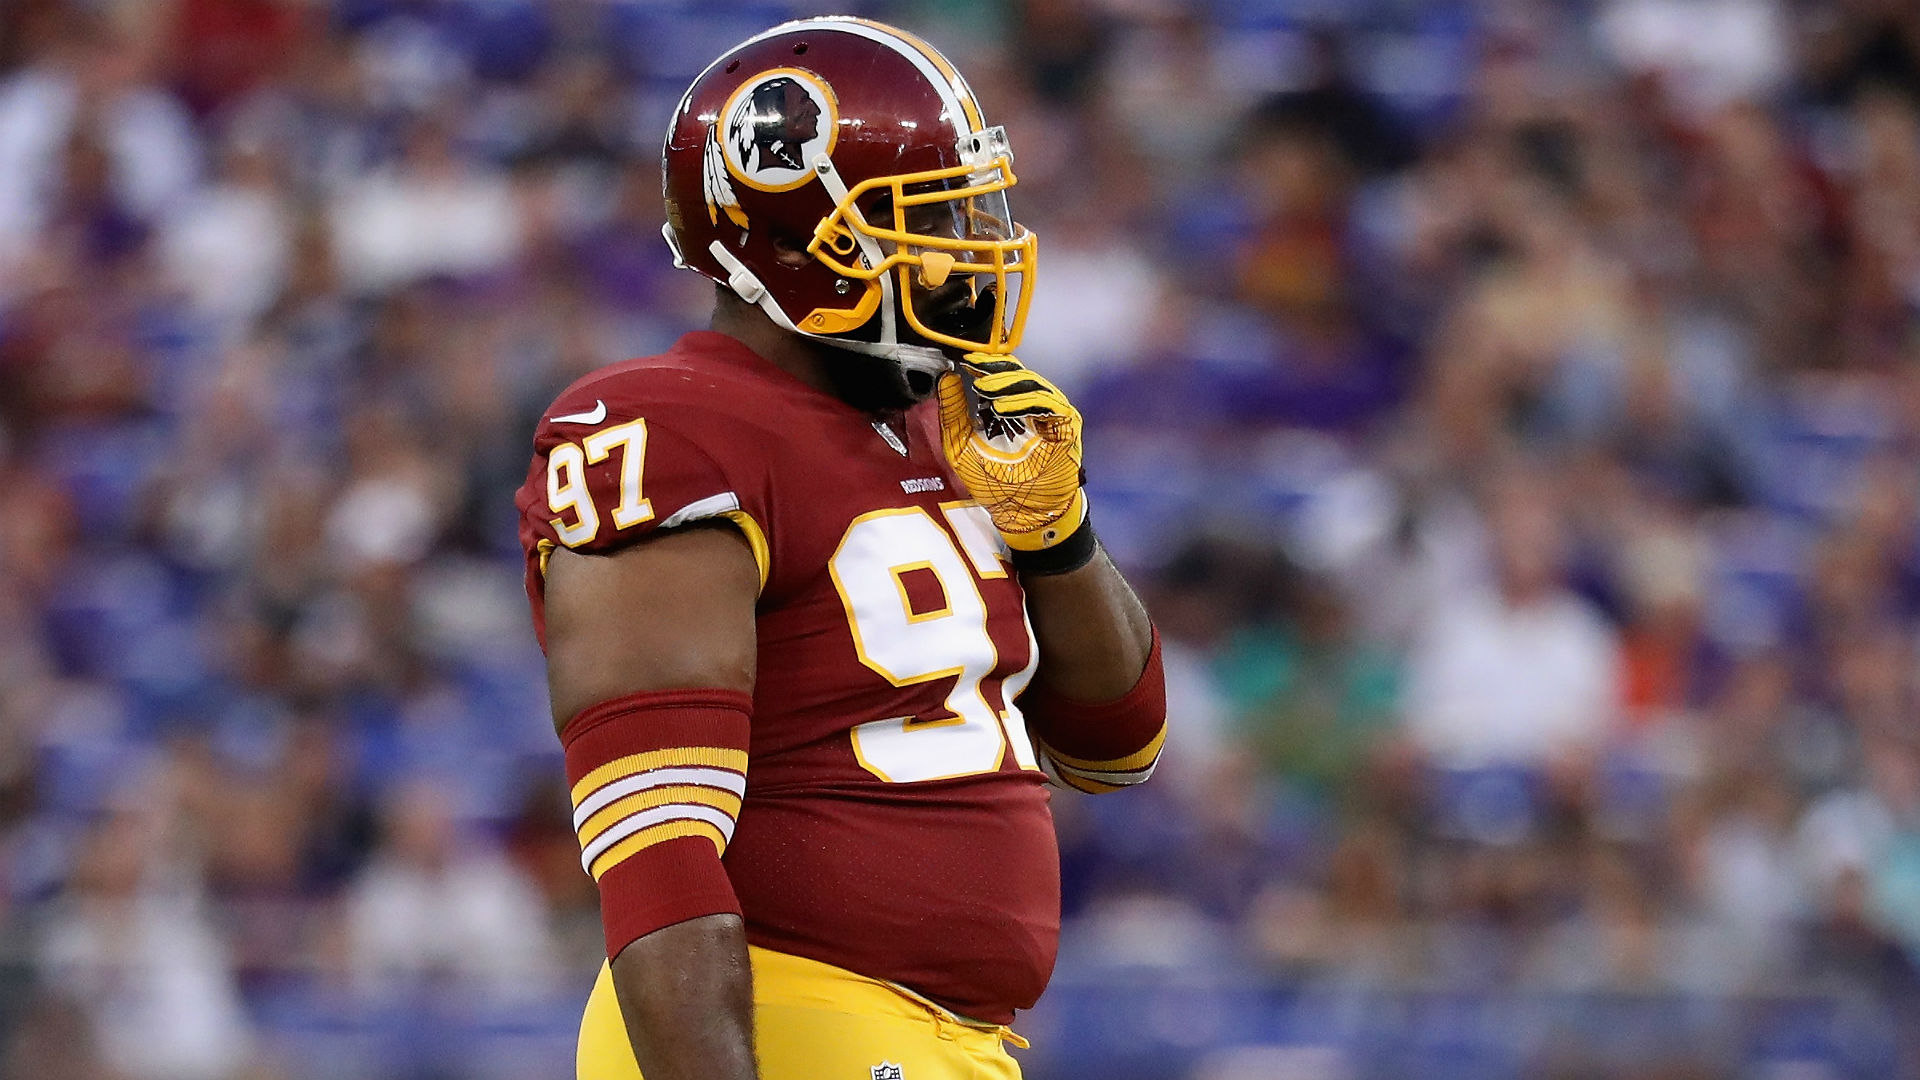 Free agent DT Terrell McClain visiting 49ers